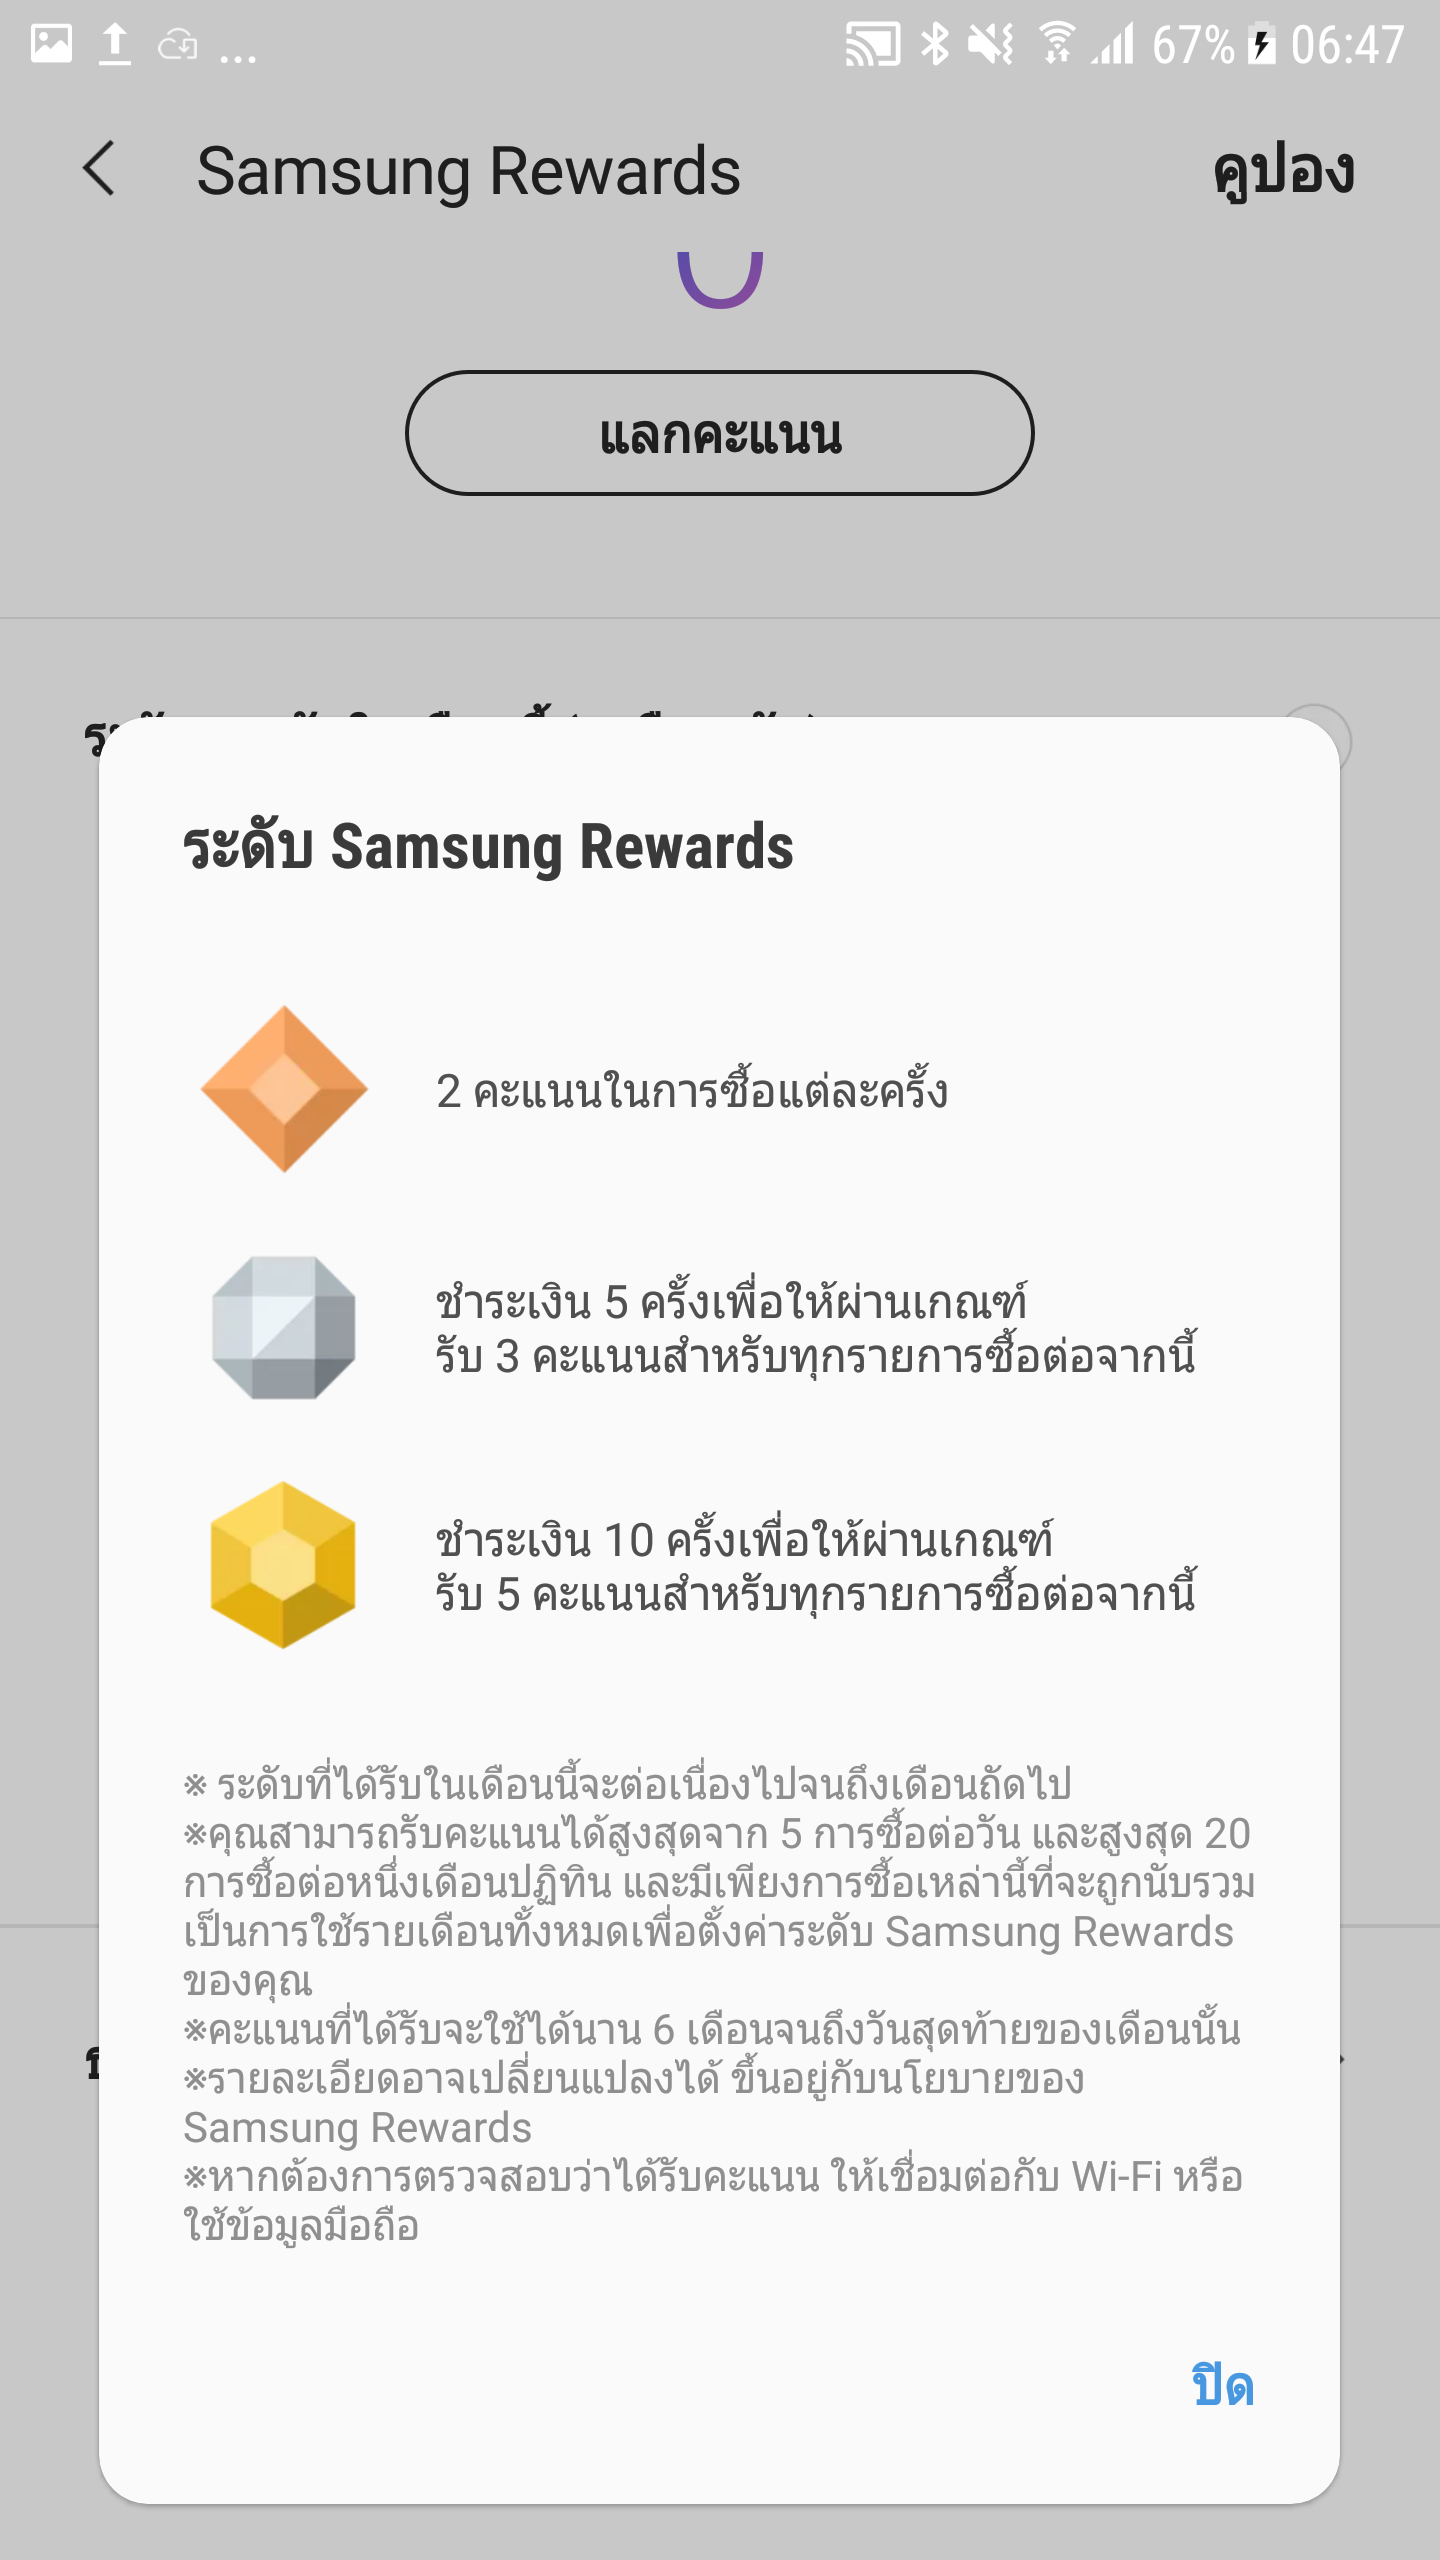 Samsung Rewards